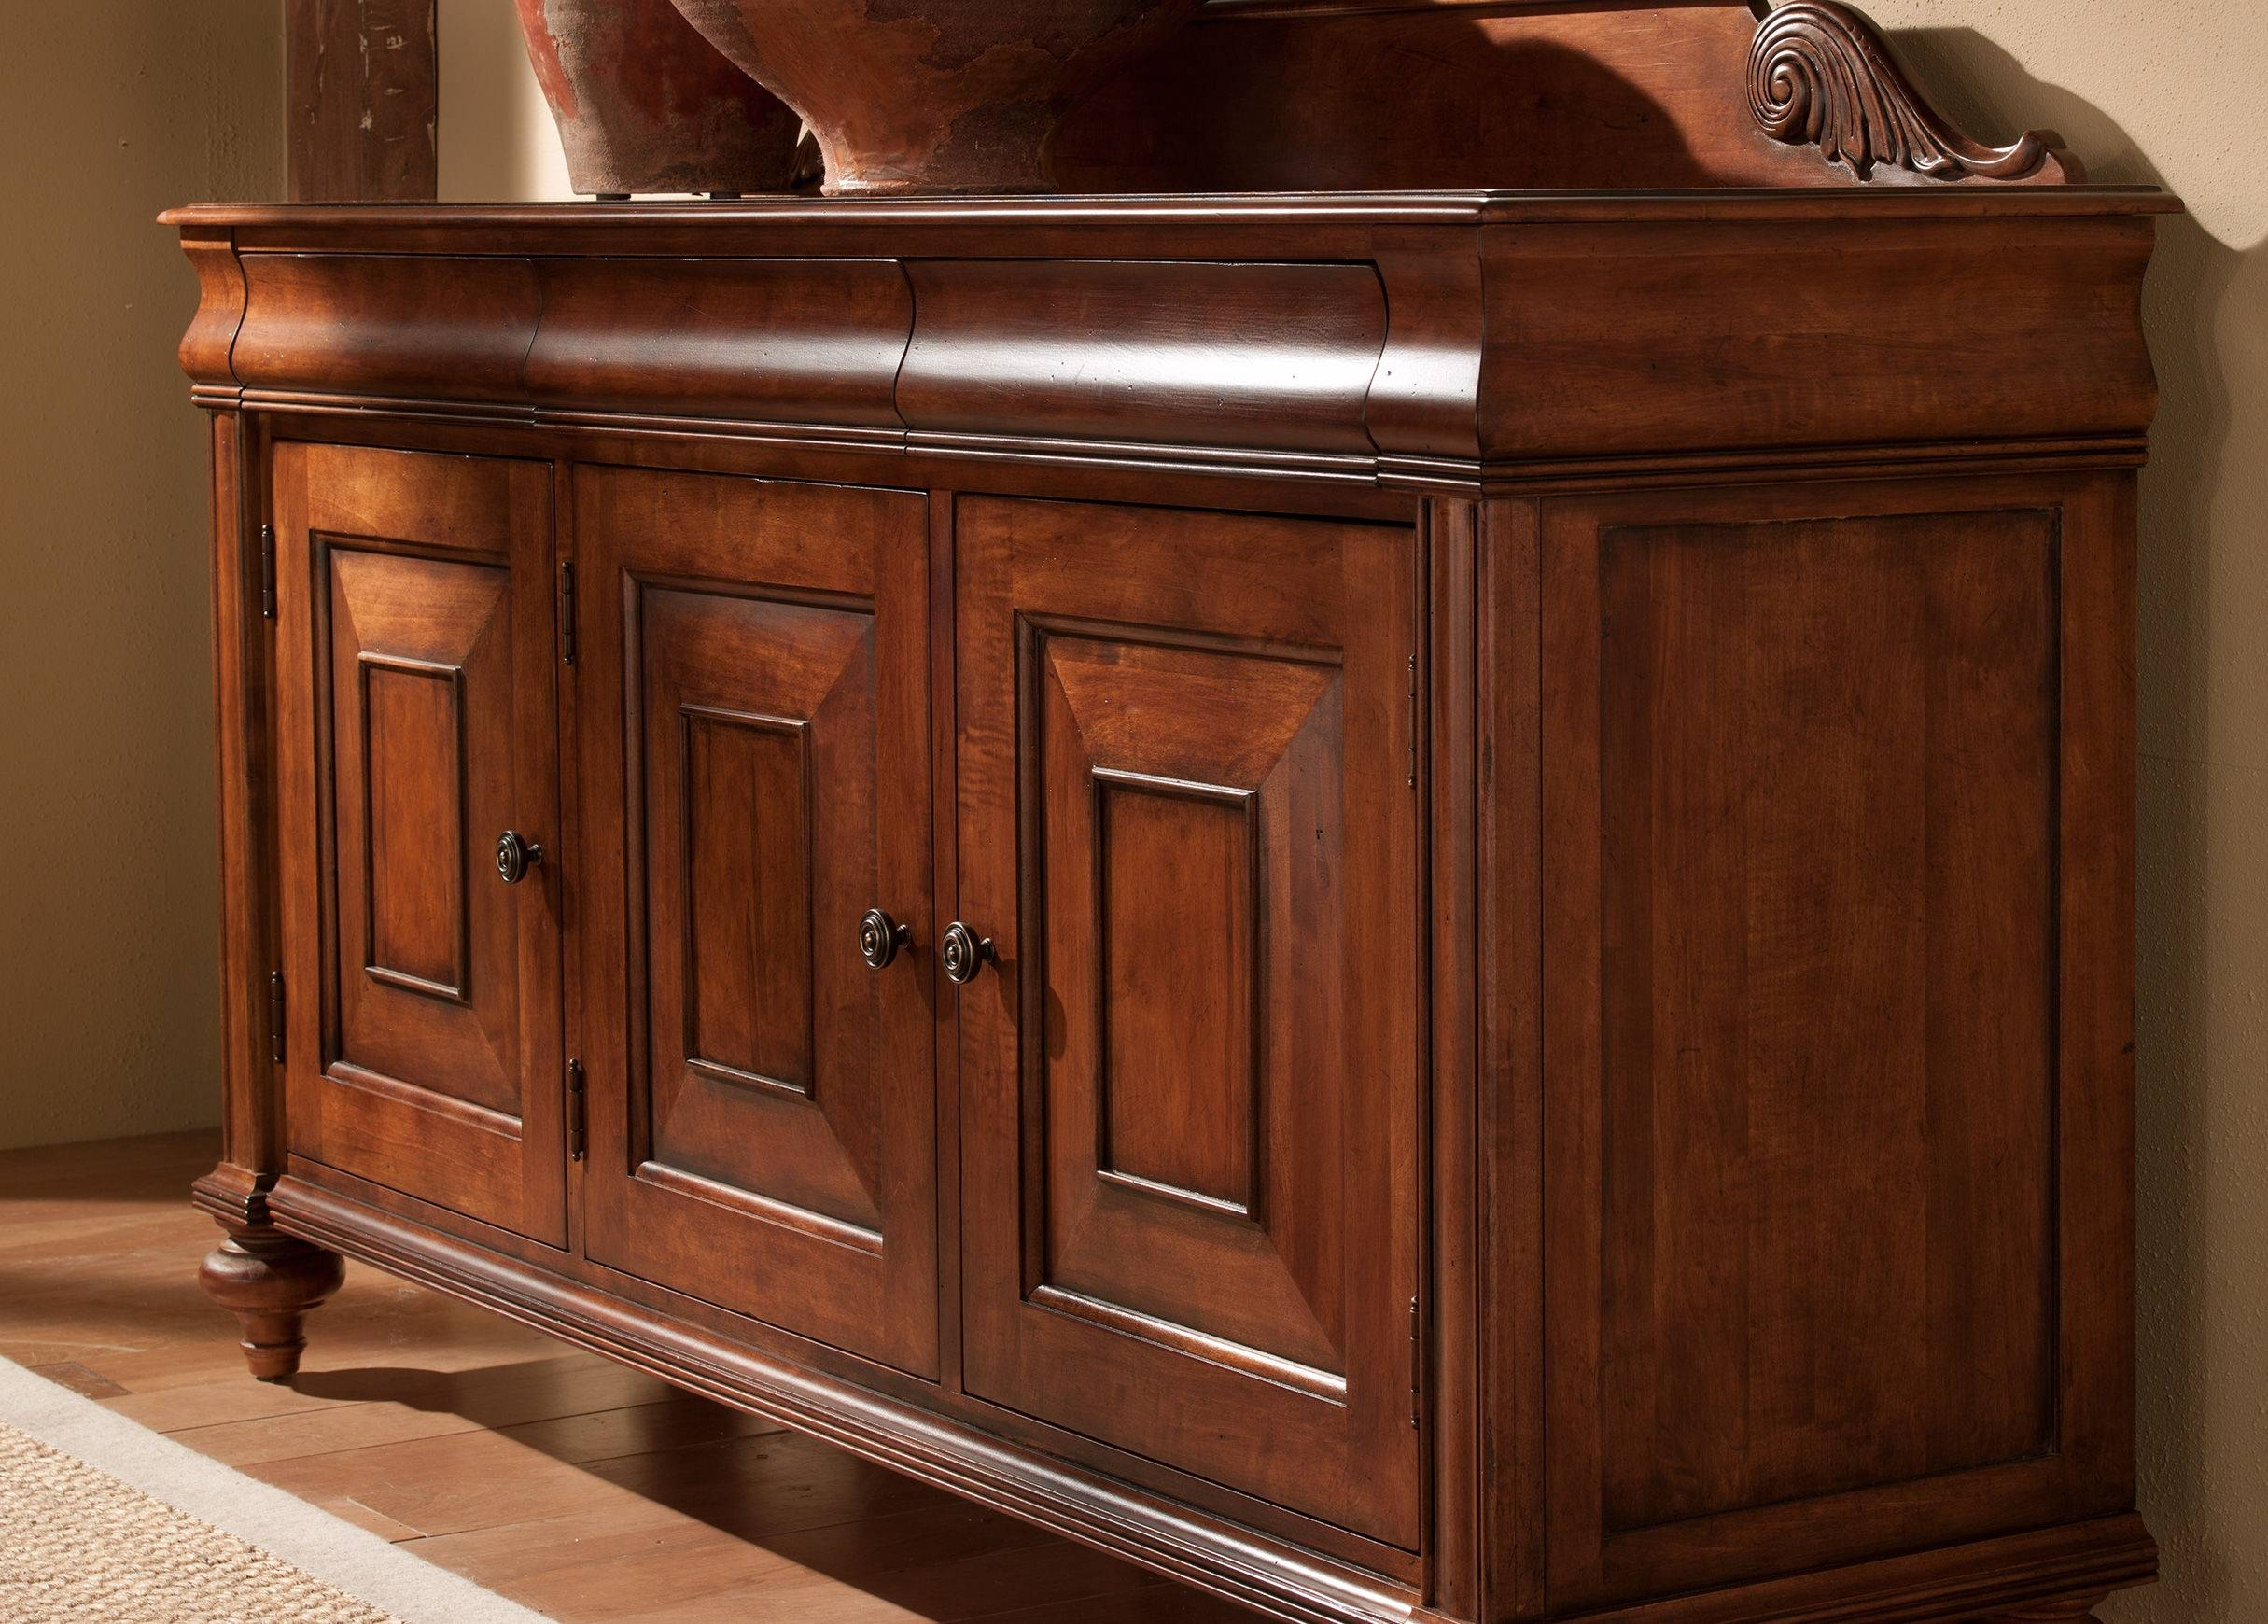 Saxton Buffet | Buffets, Sideboards & Servers For Most Popular Ethan Allen Sideboards (View 11 of 15)